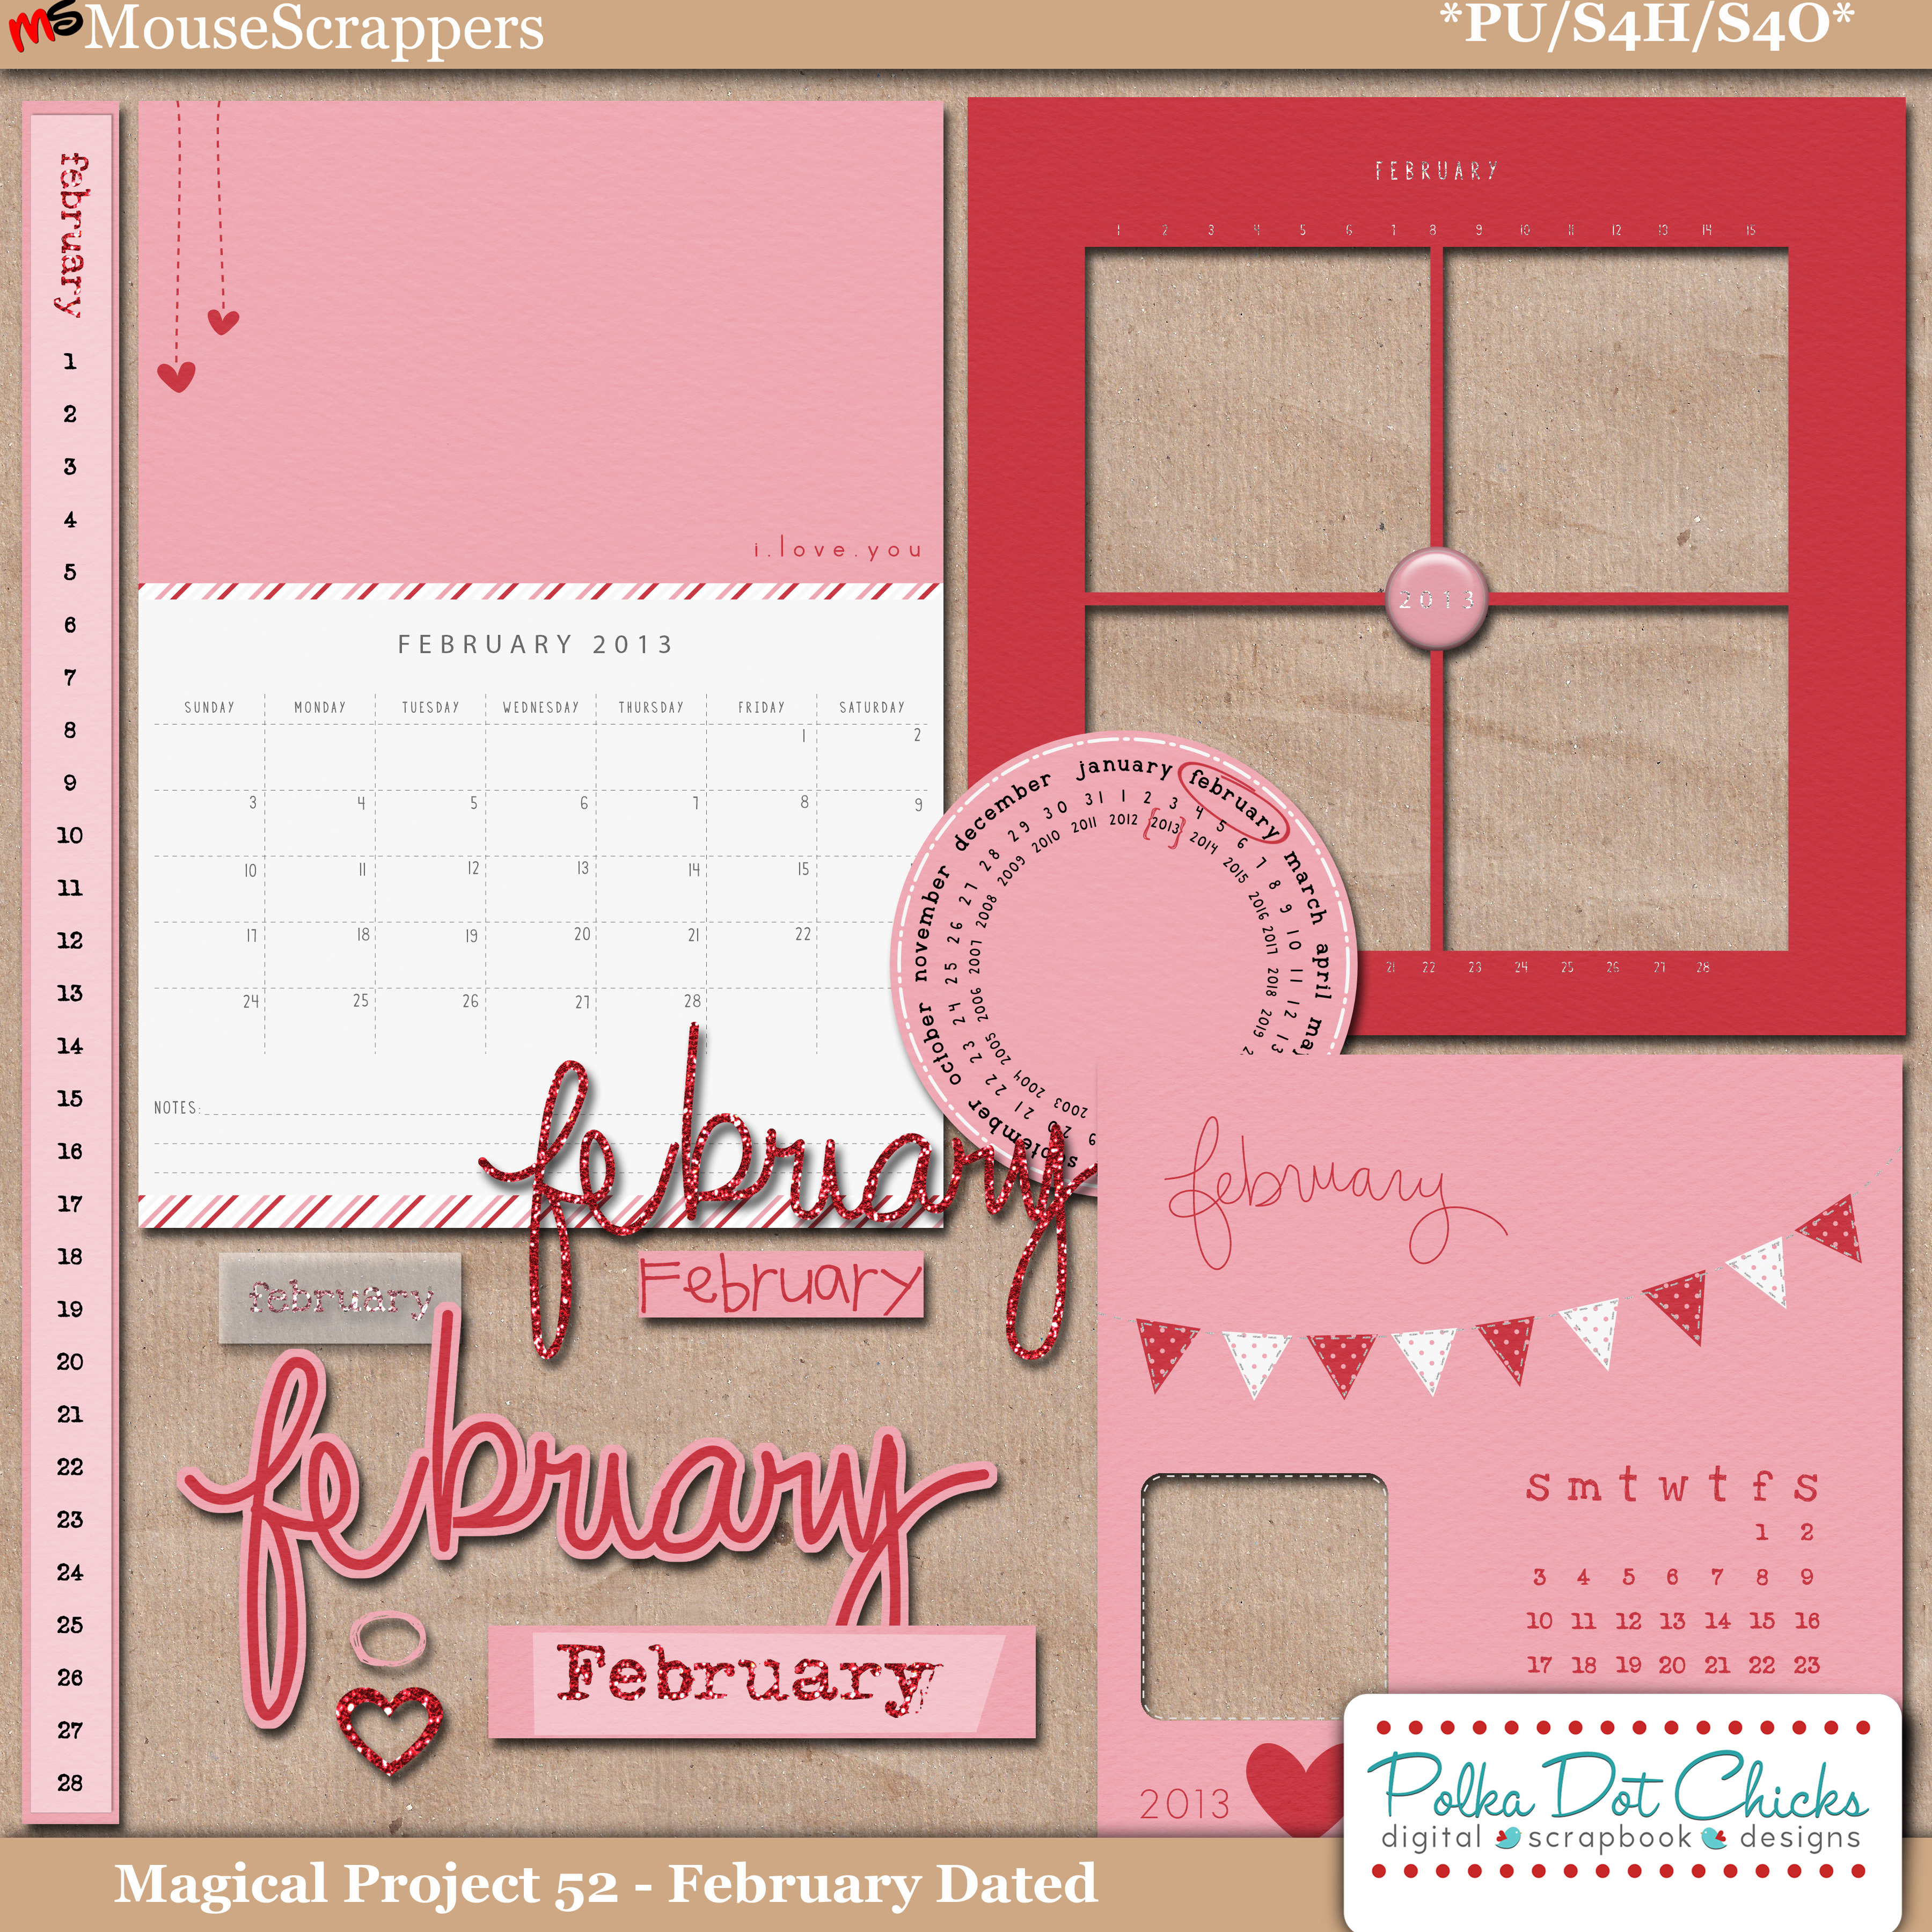 Magical Project 52 - February Dated